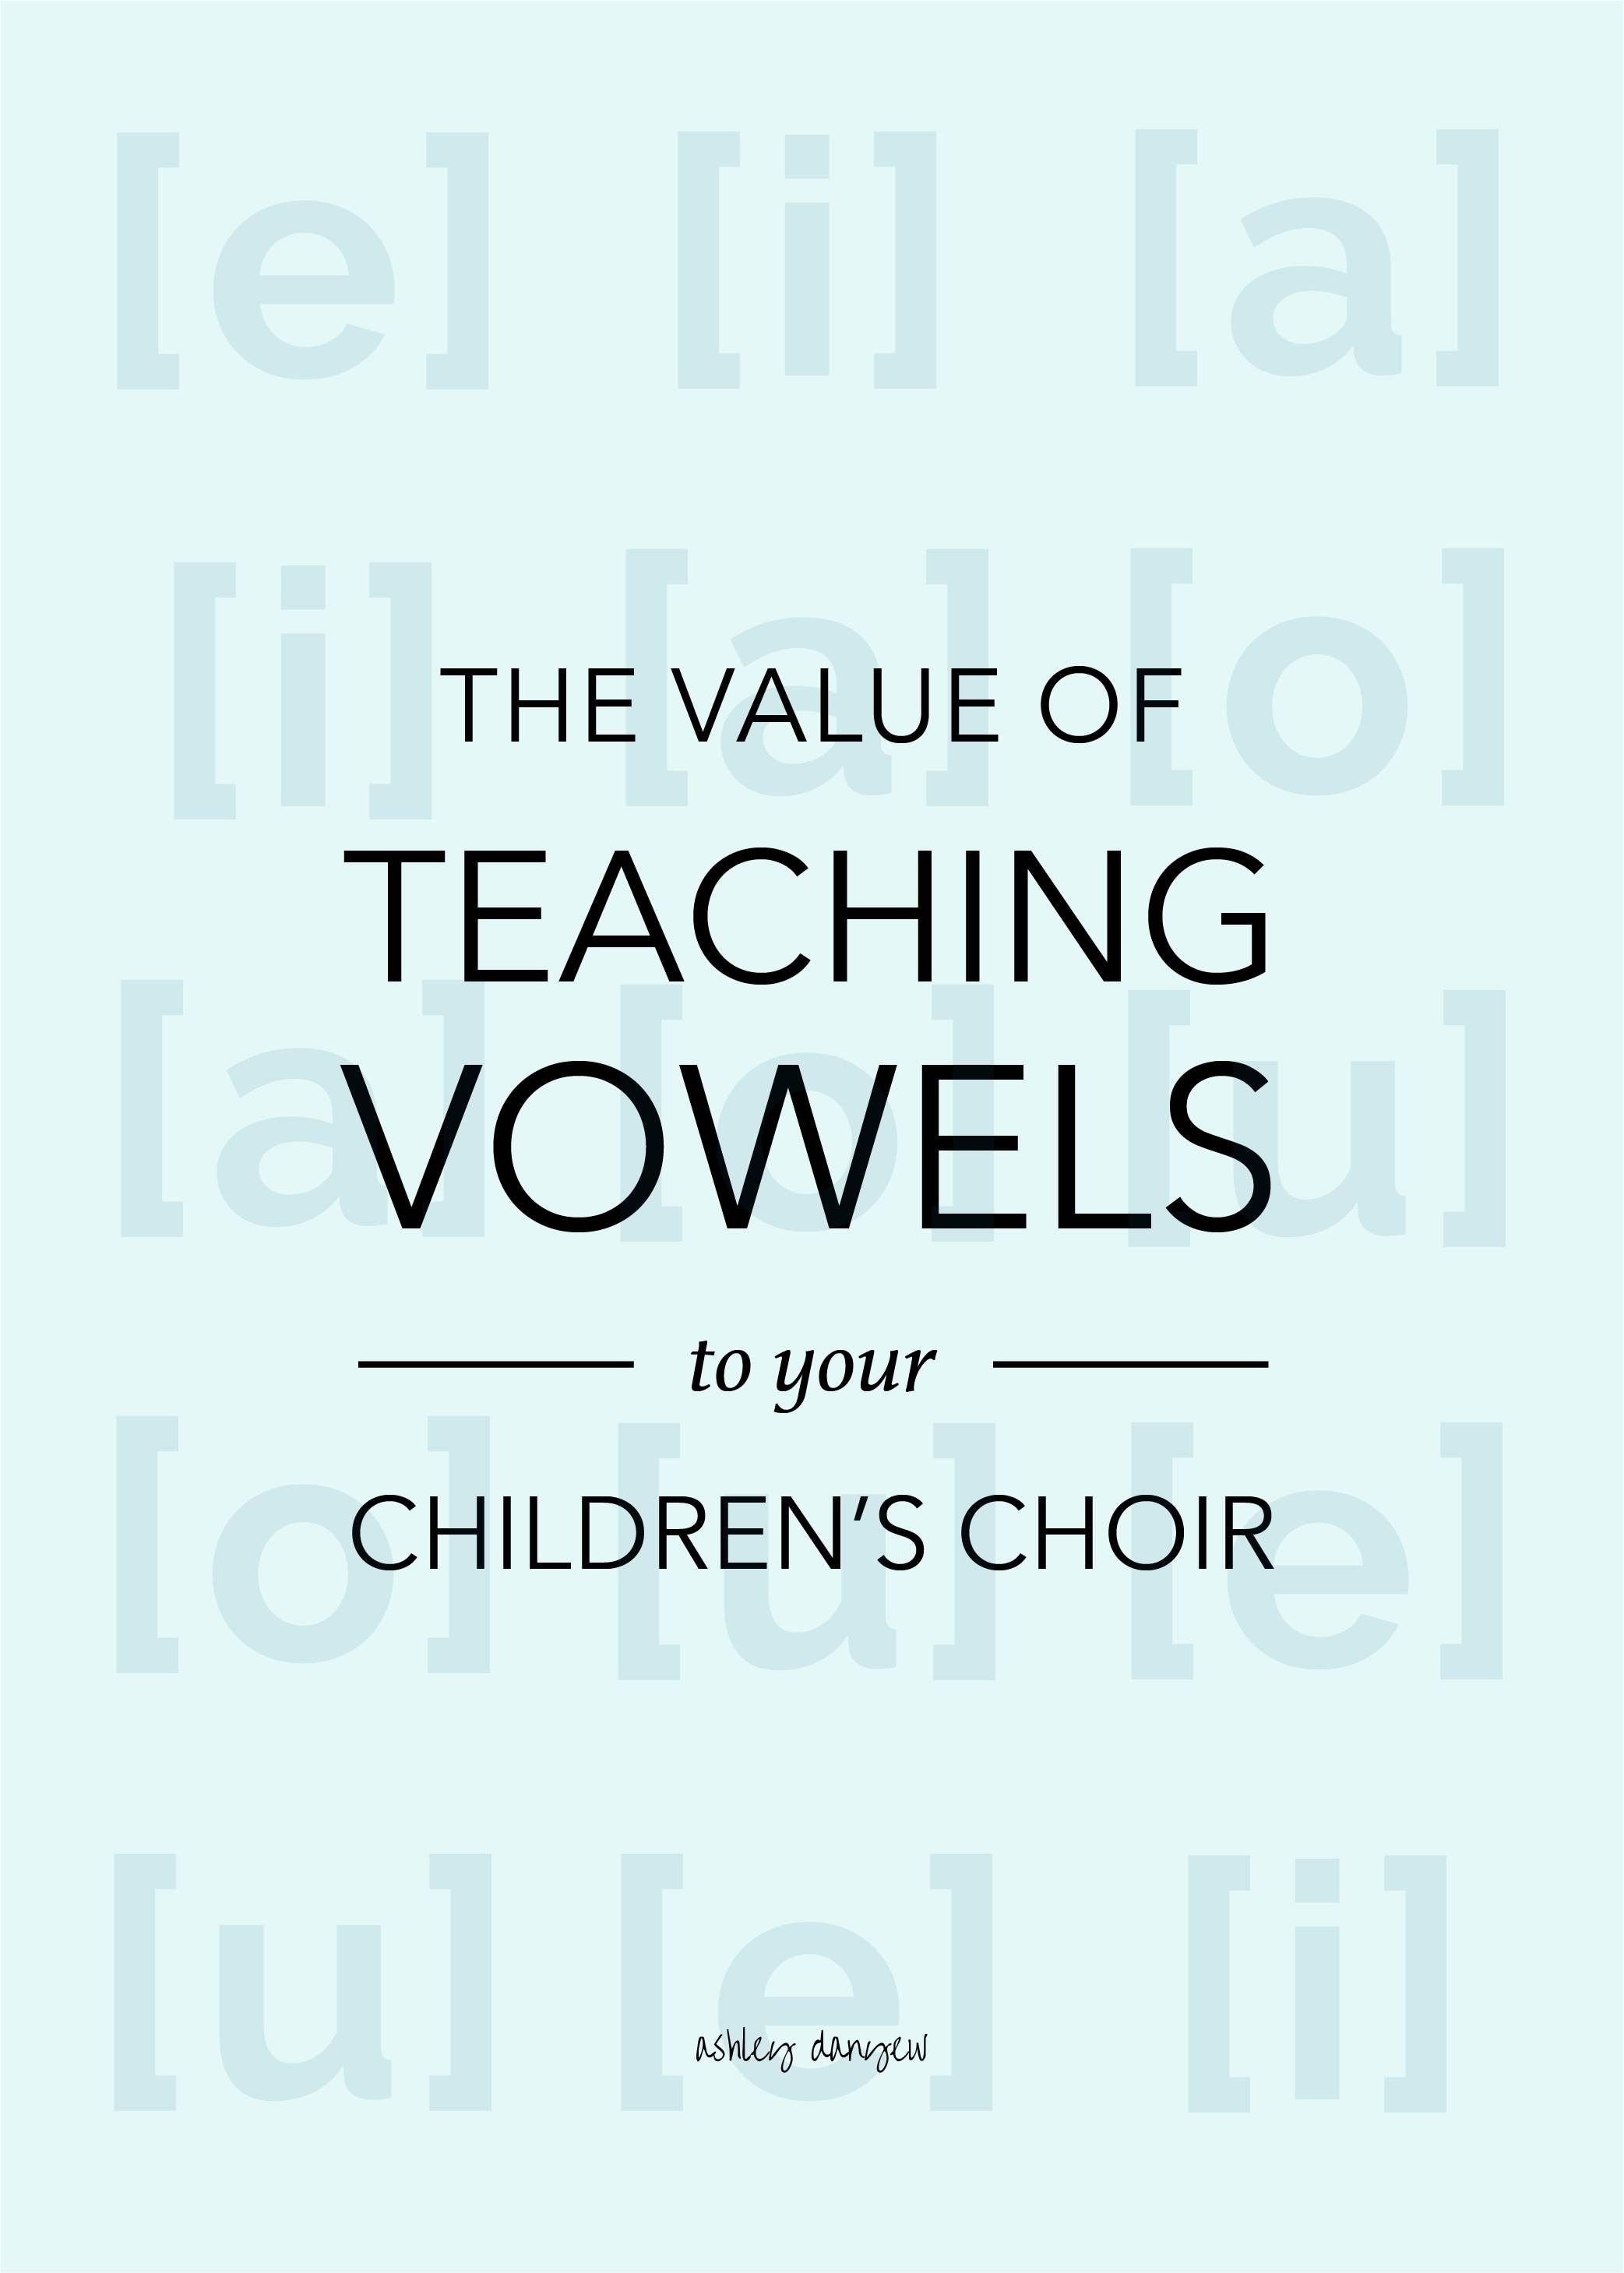 Copy of The Value of Teaching Vowels to Your Children's Choir